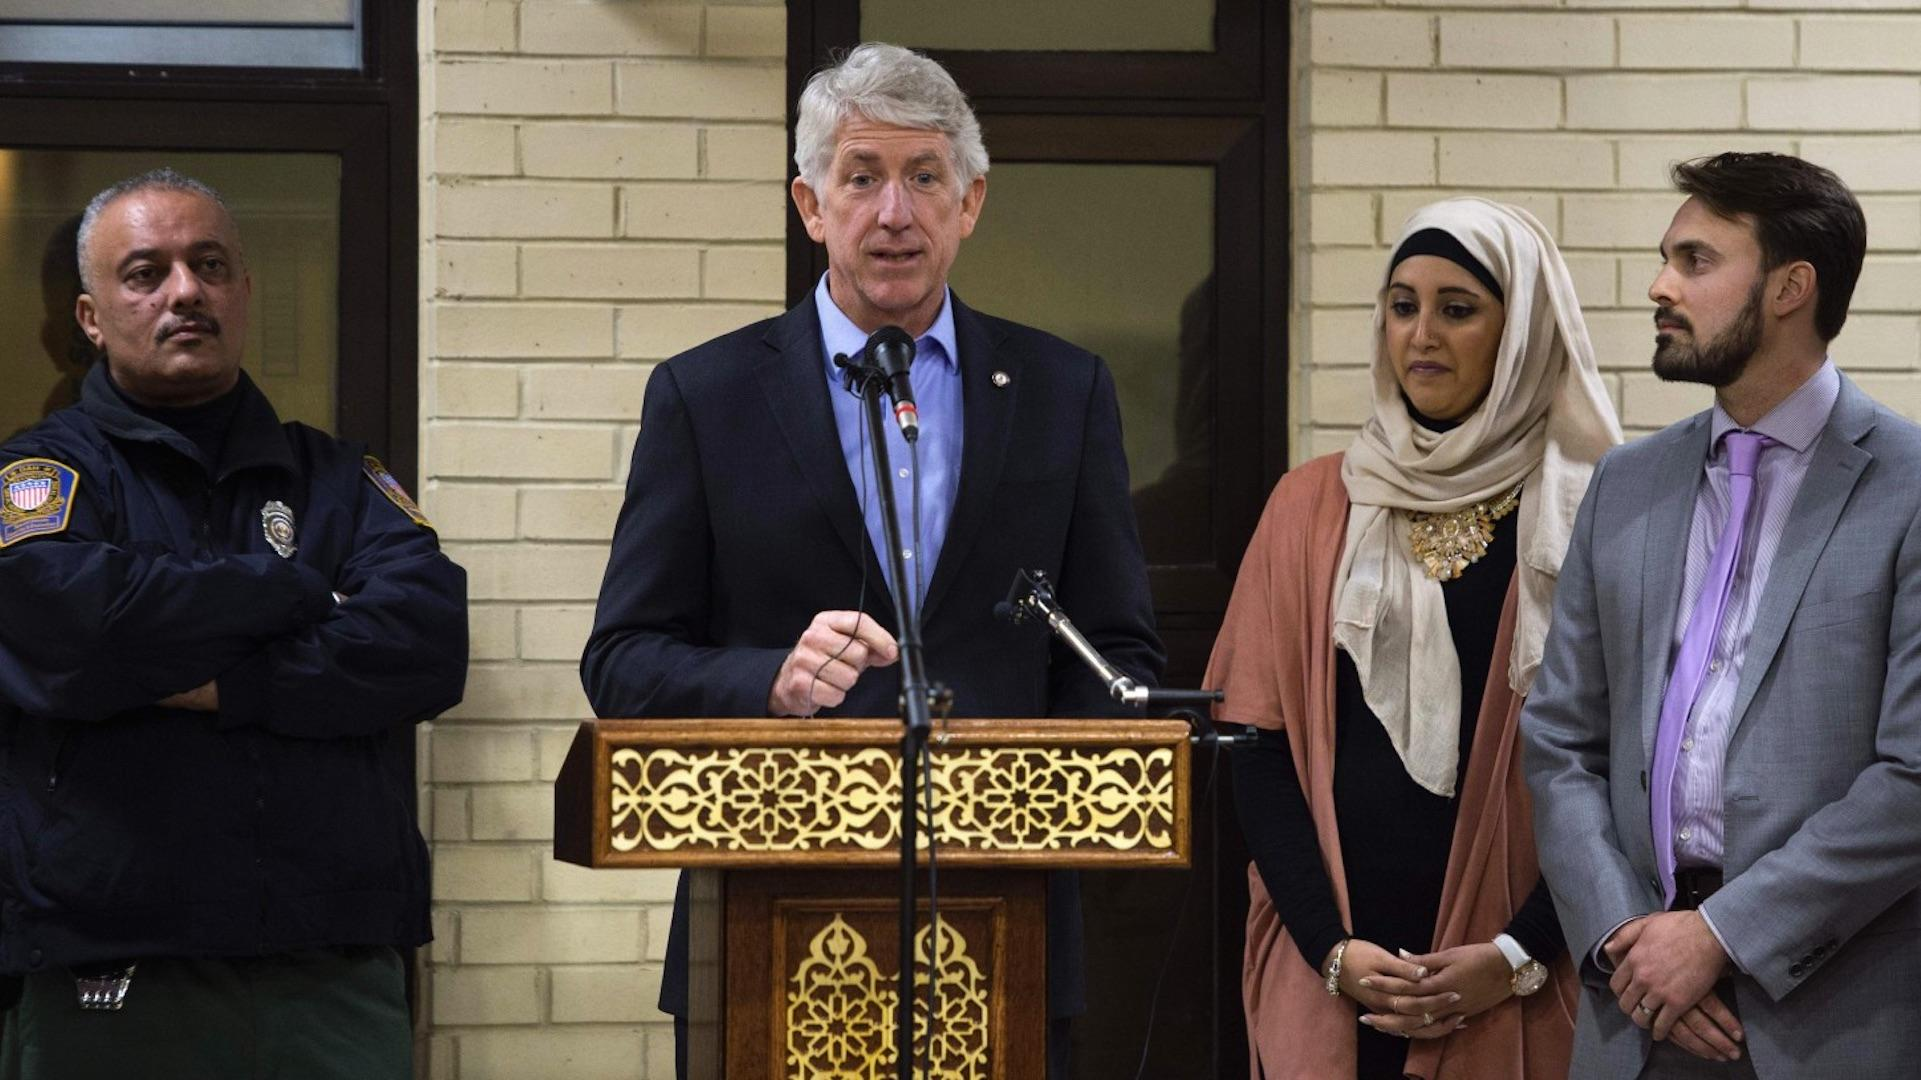 Va. GOP demands apology for Herring's visit to mosque